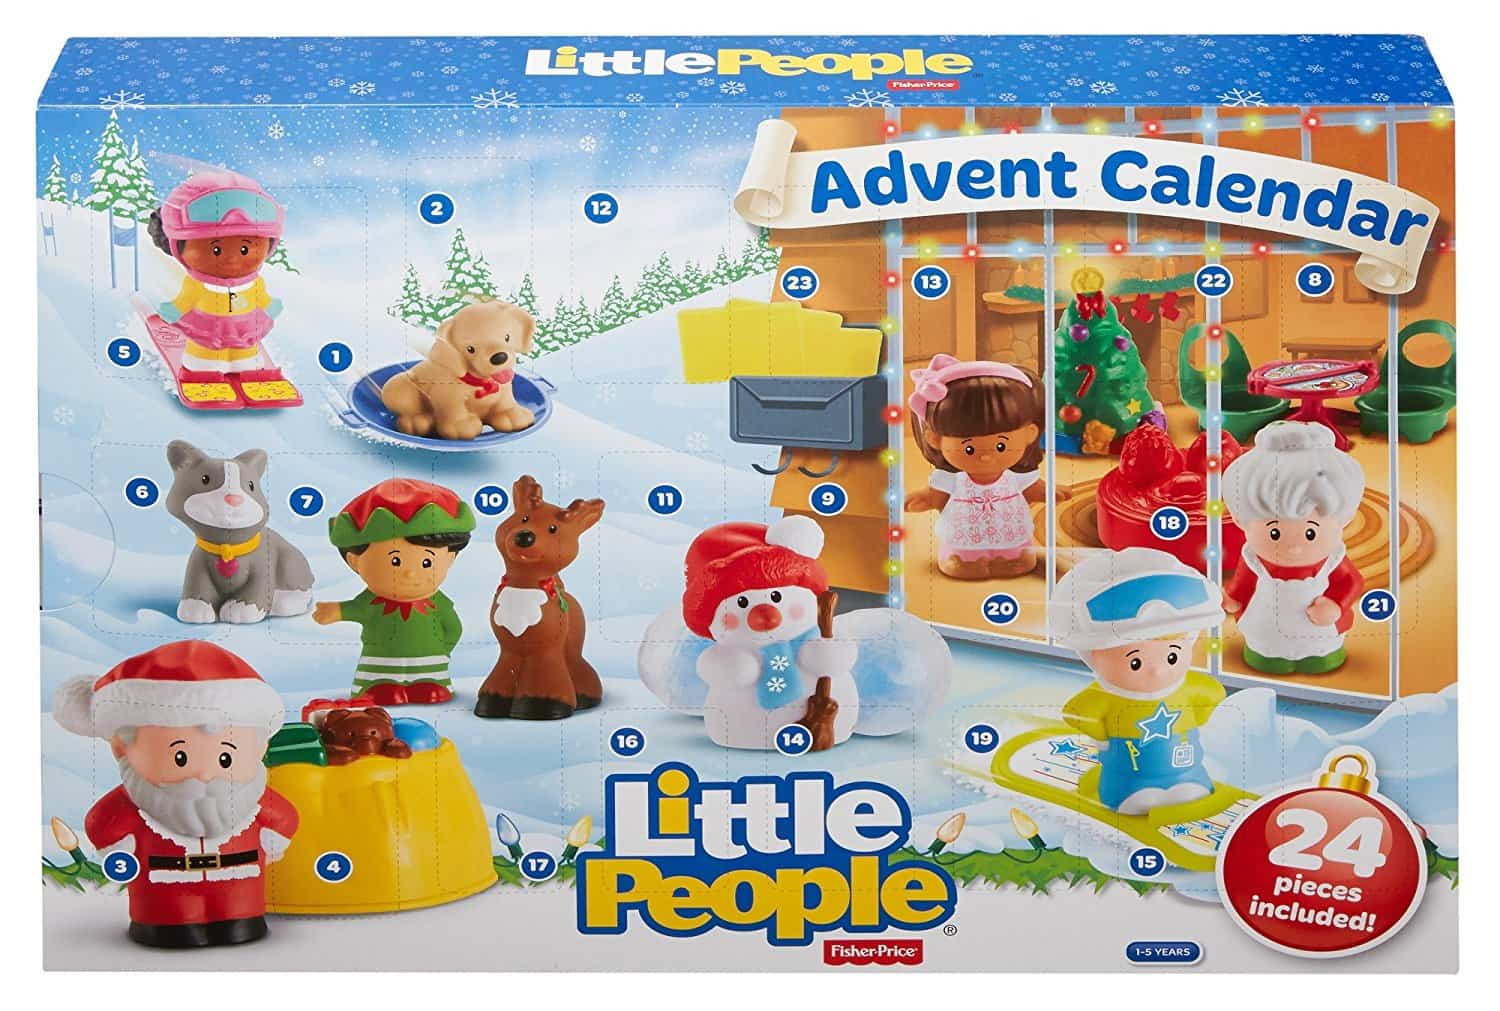 Little people 2017 advent calendar price drop to 12 hello fisher price little people 2017 advent calendars are available now theyre 3499 at amazon and there looks to be no changes from last years calendar buycottarizona